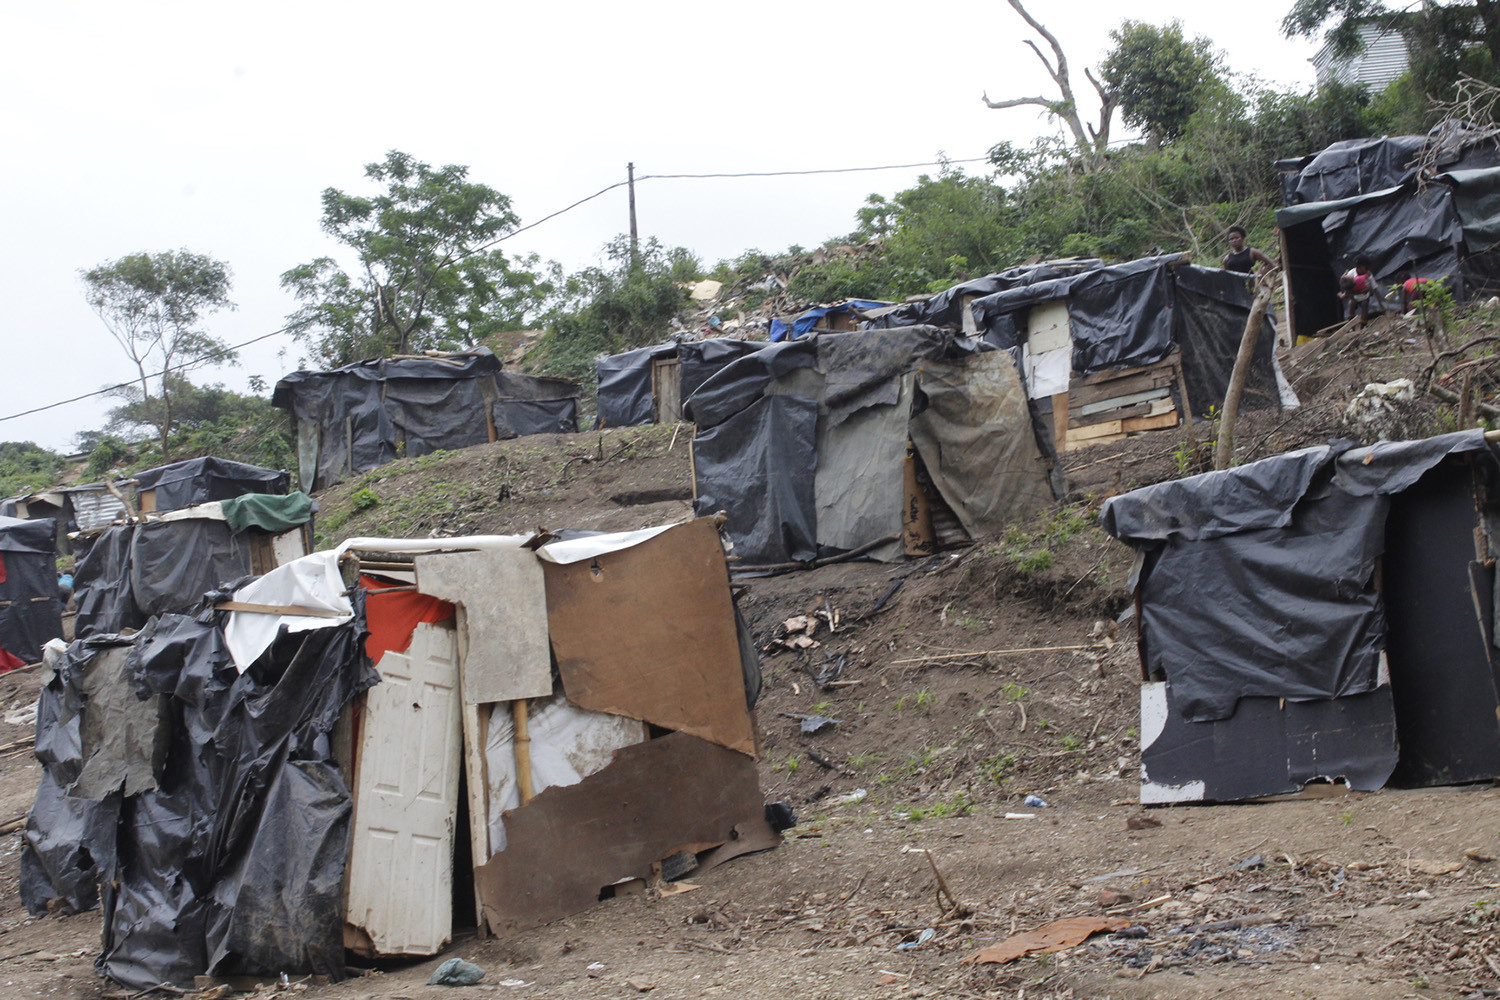 5 November 2018: Shacks in eKhenana, a new land occupation in Cato Crest in Durban. (Photograph by Nomfundo Xolo/GroundUp)